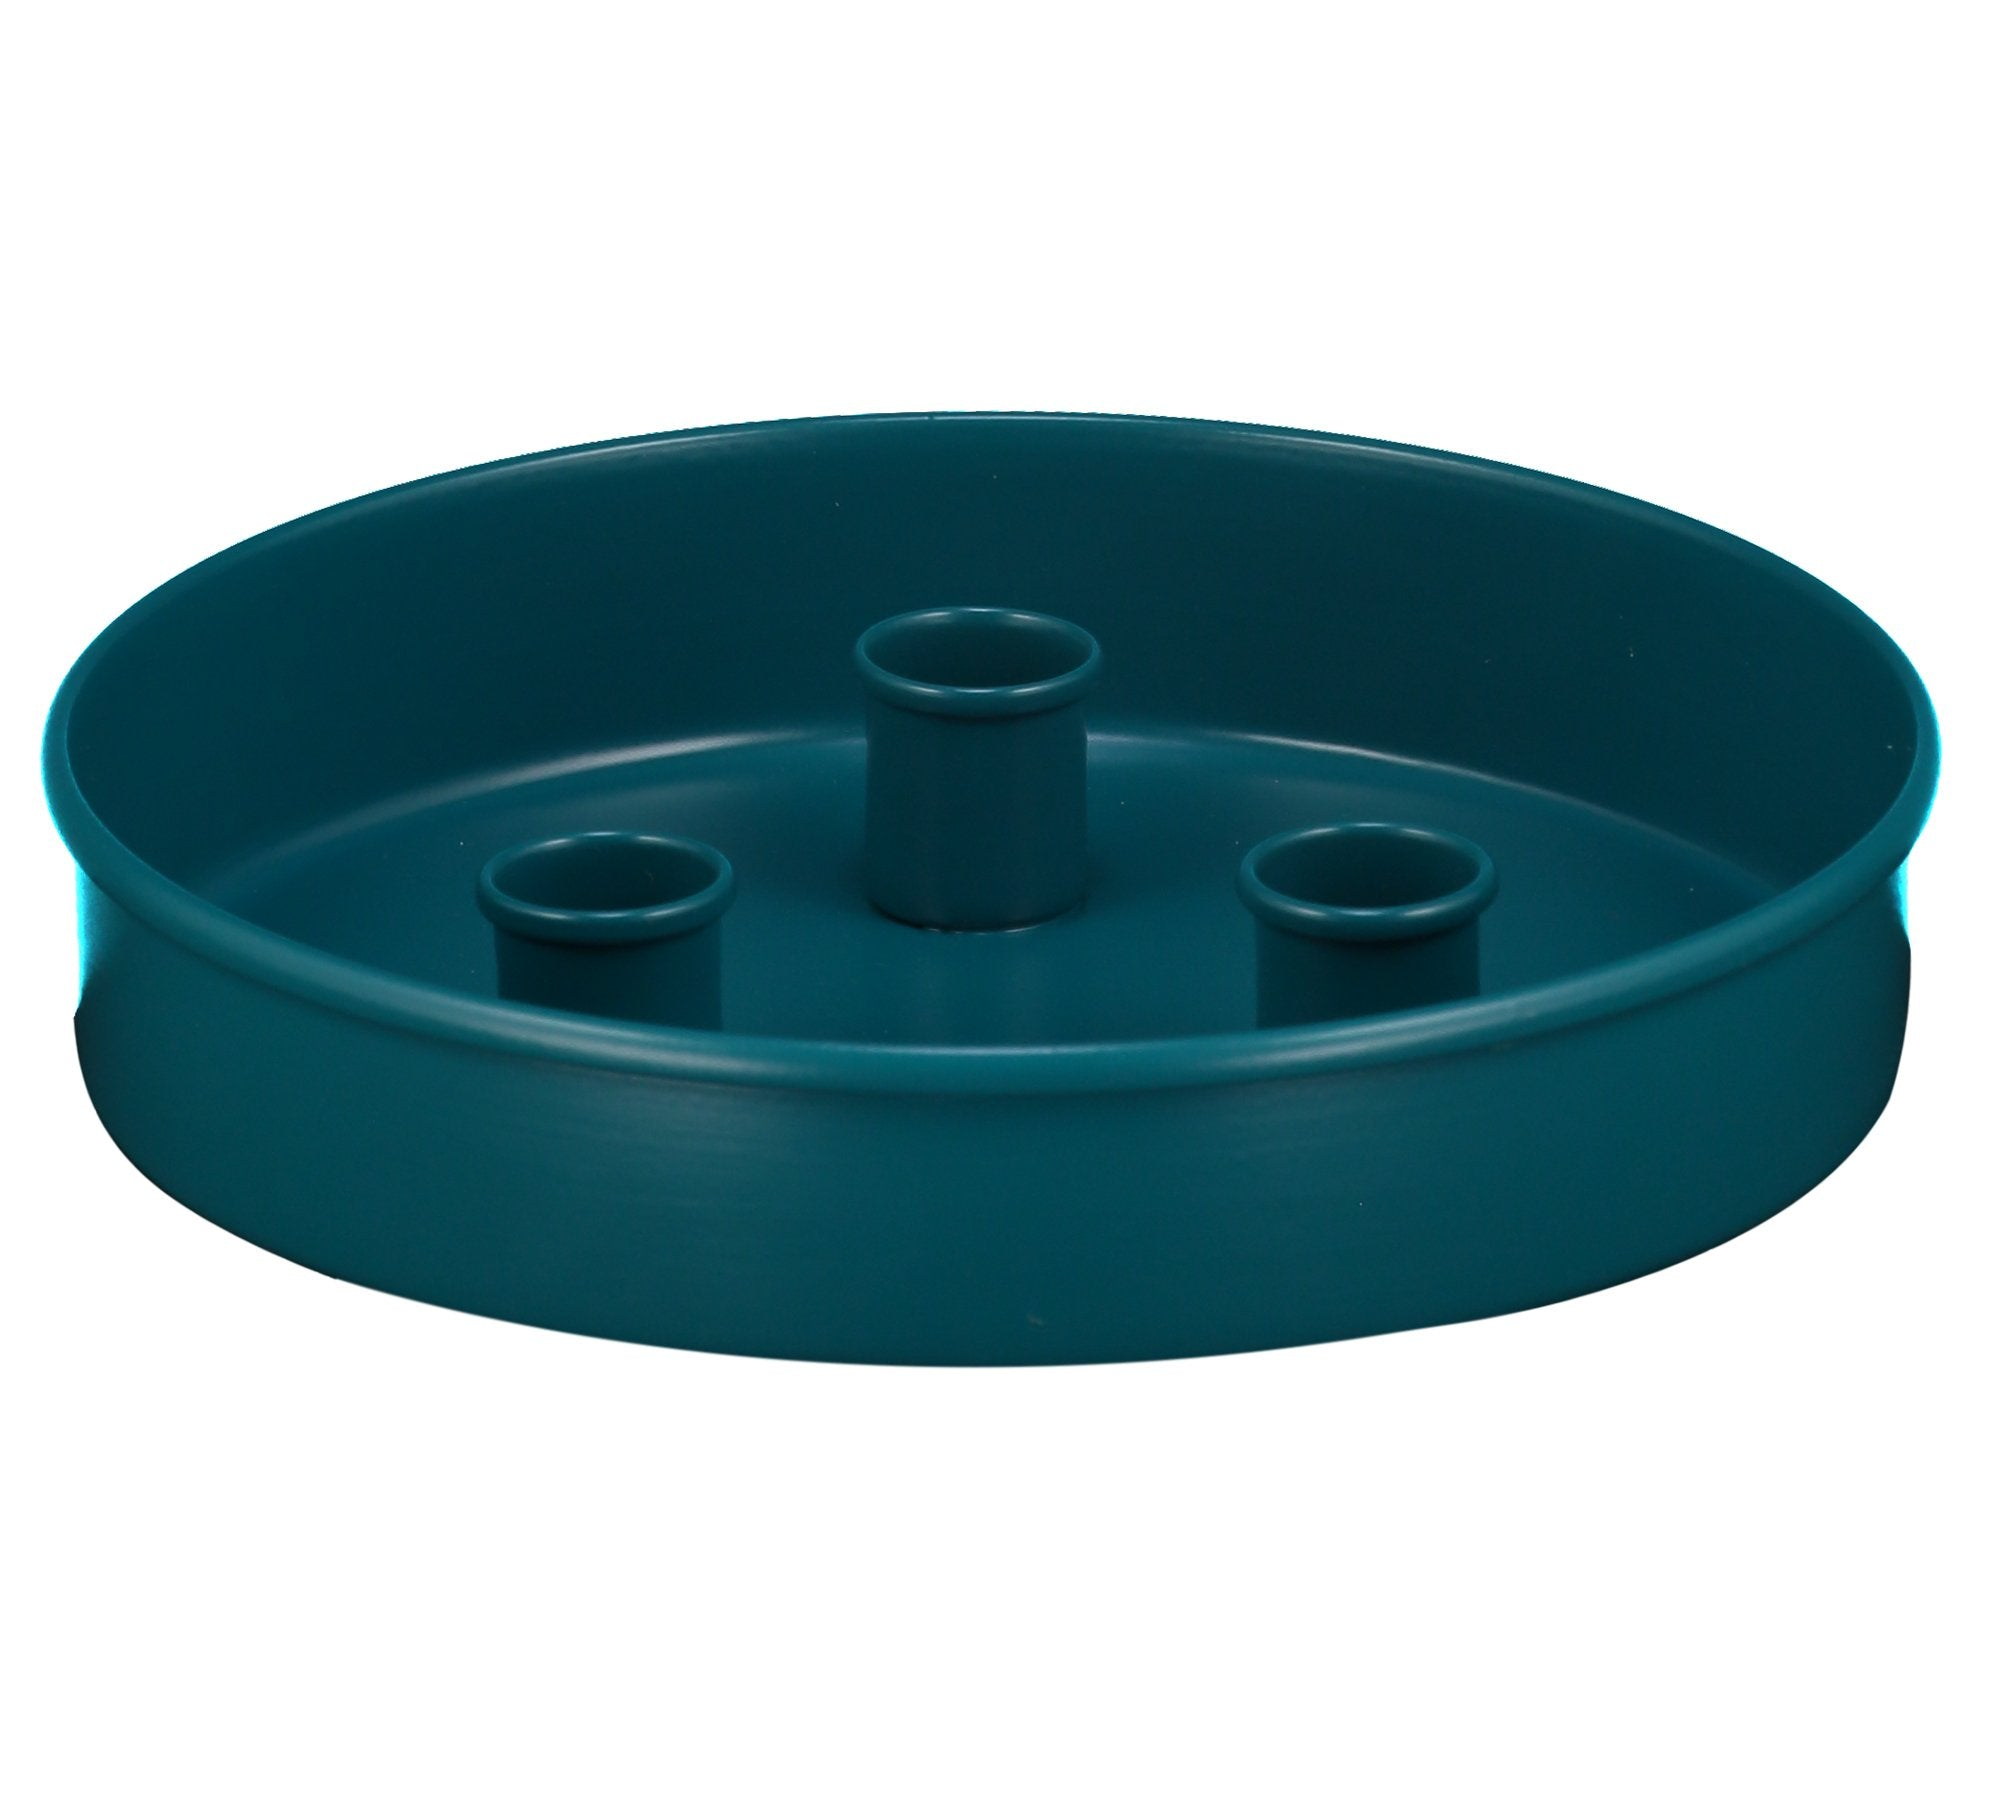 BRITISH COLOUR STANDARD - 20 cm D / 7.8'' D Small Round Metal Candle Platter - Petrol Blue